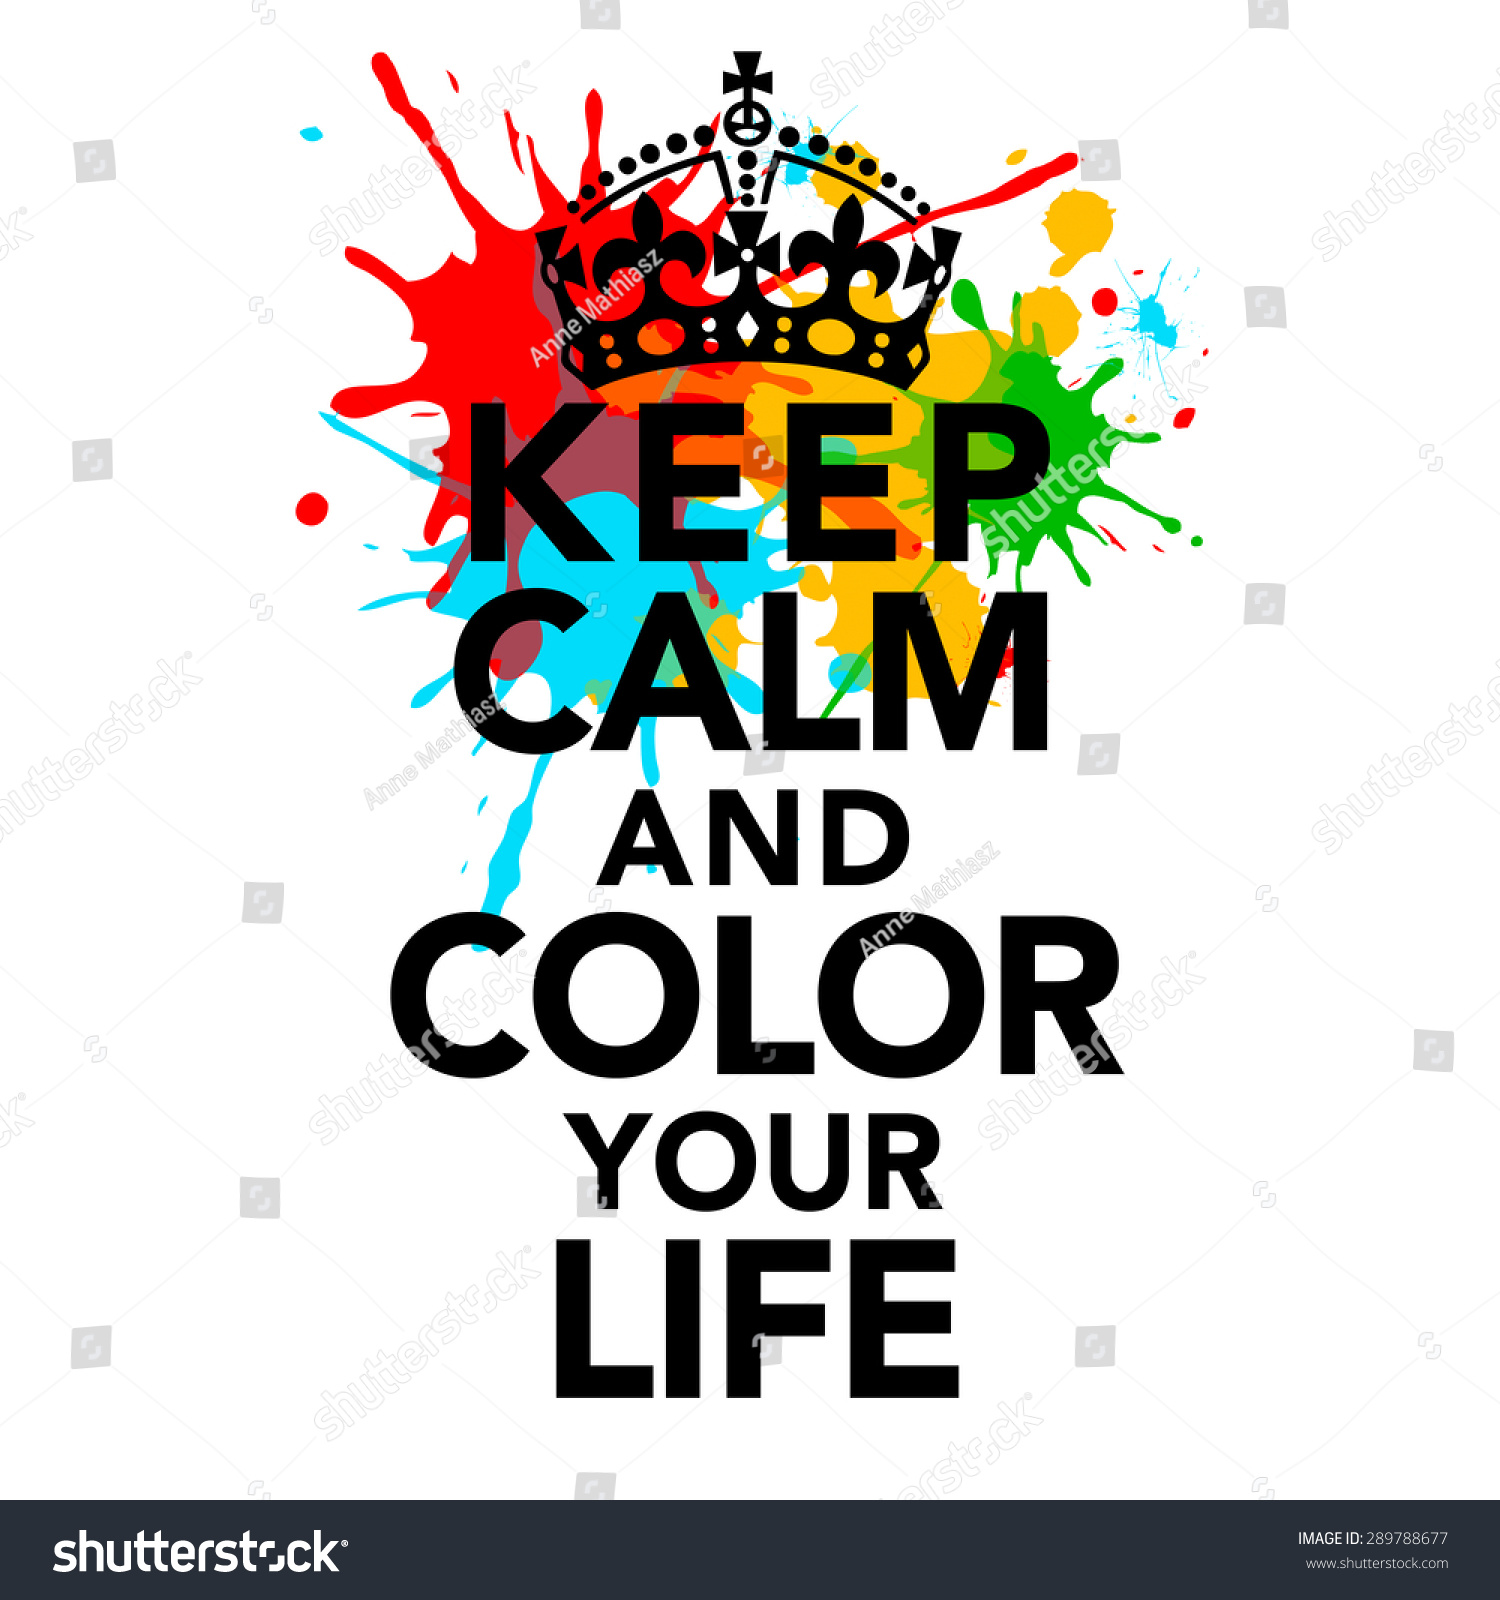 Color Your Life Quotes Alluring Keep Calm Color Your Life Statement Stock Illustration 289788677